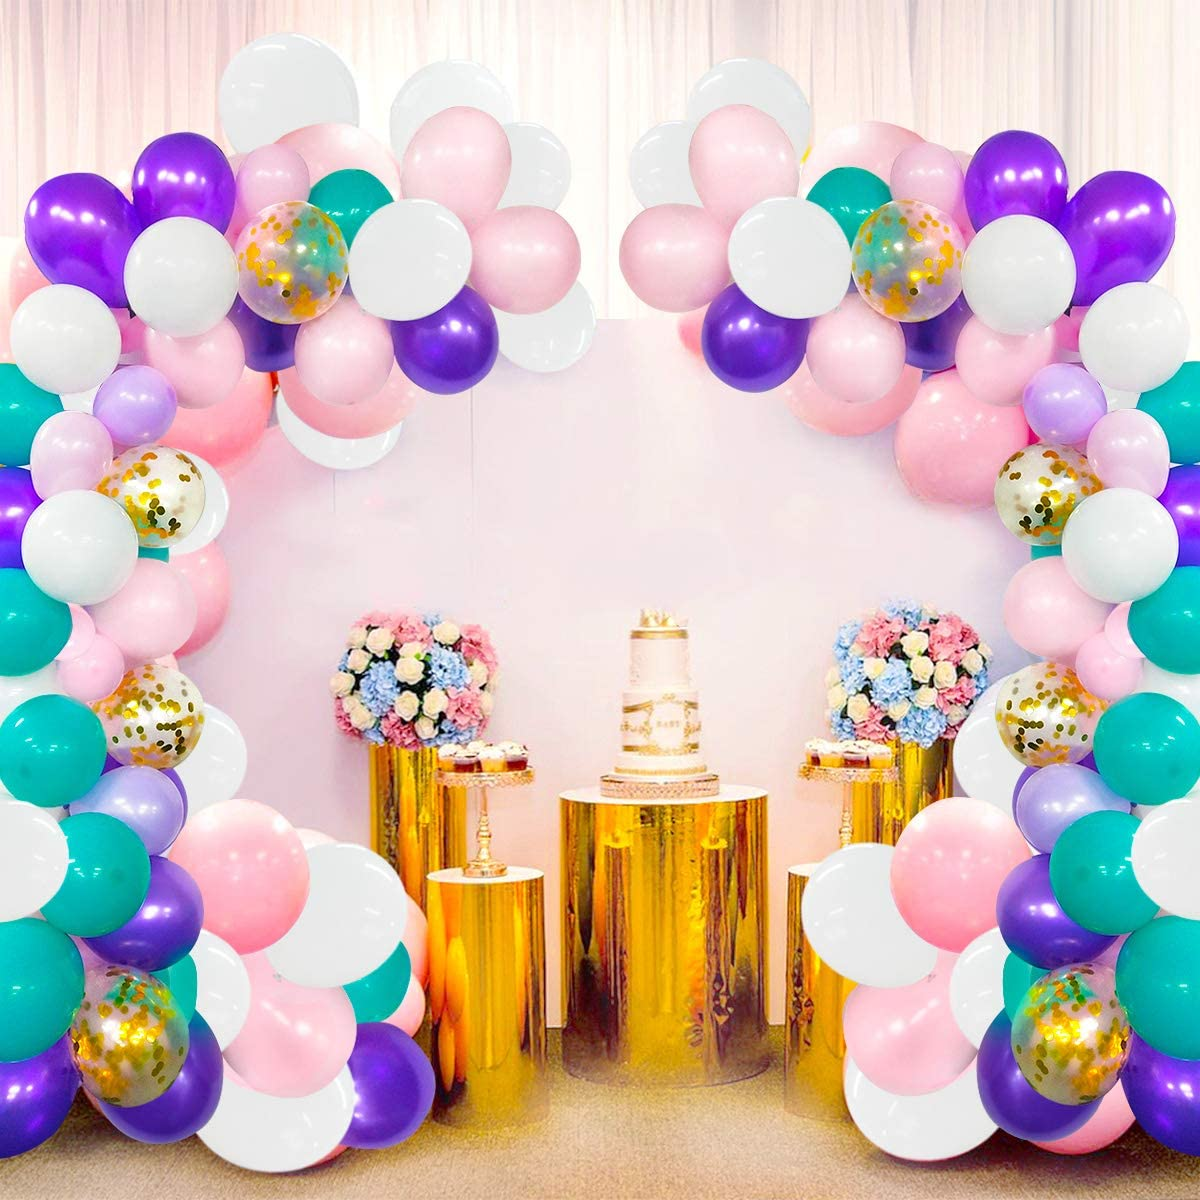 Unicorn Balloons Garland Kit 118 Pcs Purple Pink Blue White Assorted Latex Balloons Baby Shower Unicorn Party